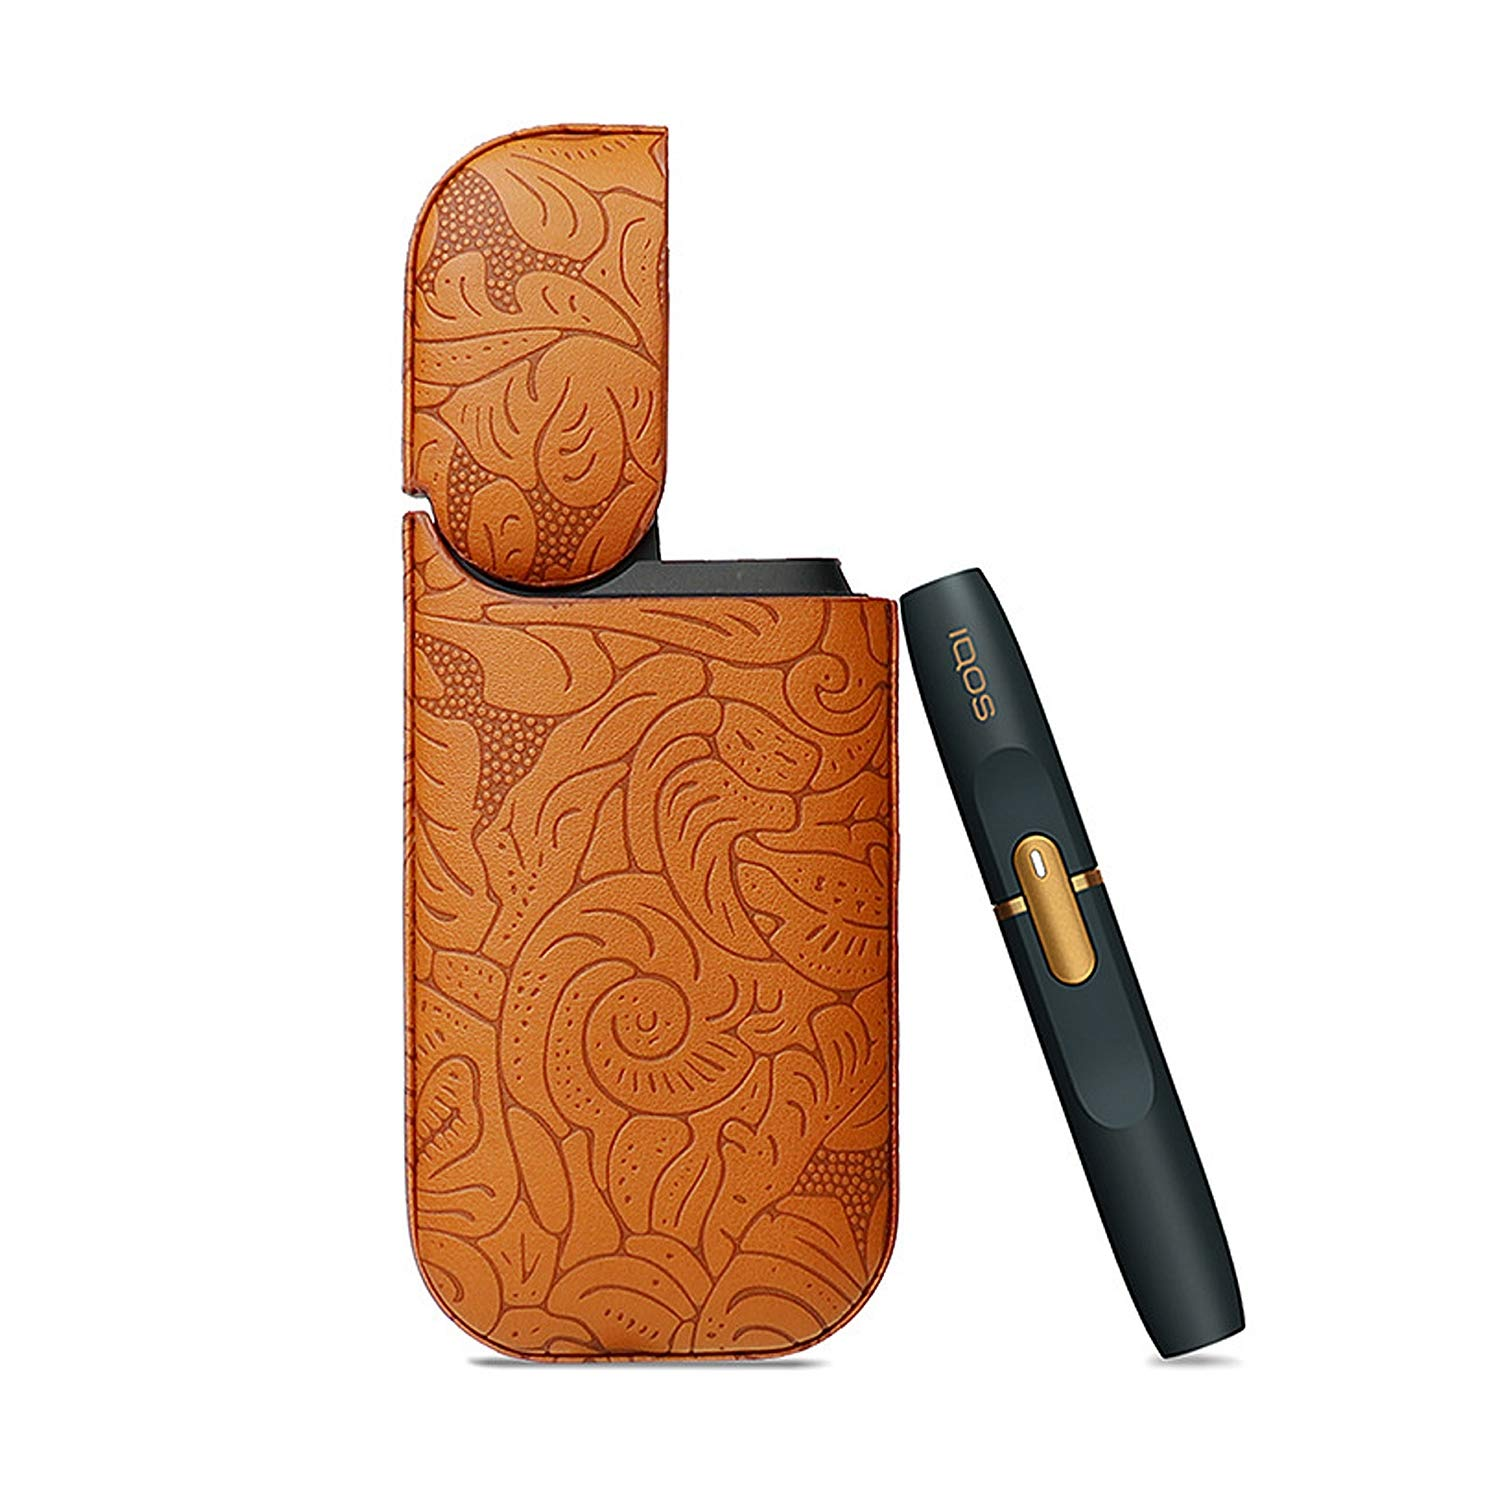 Relubby Leather Cover for IQOS, Flower Print Cigarette Storage Bag for 2.4Plus, Men's Anti-Slip Frosted Leather Electronic Smoke Sets Shell,Orange